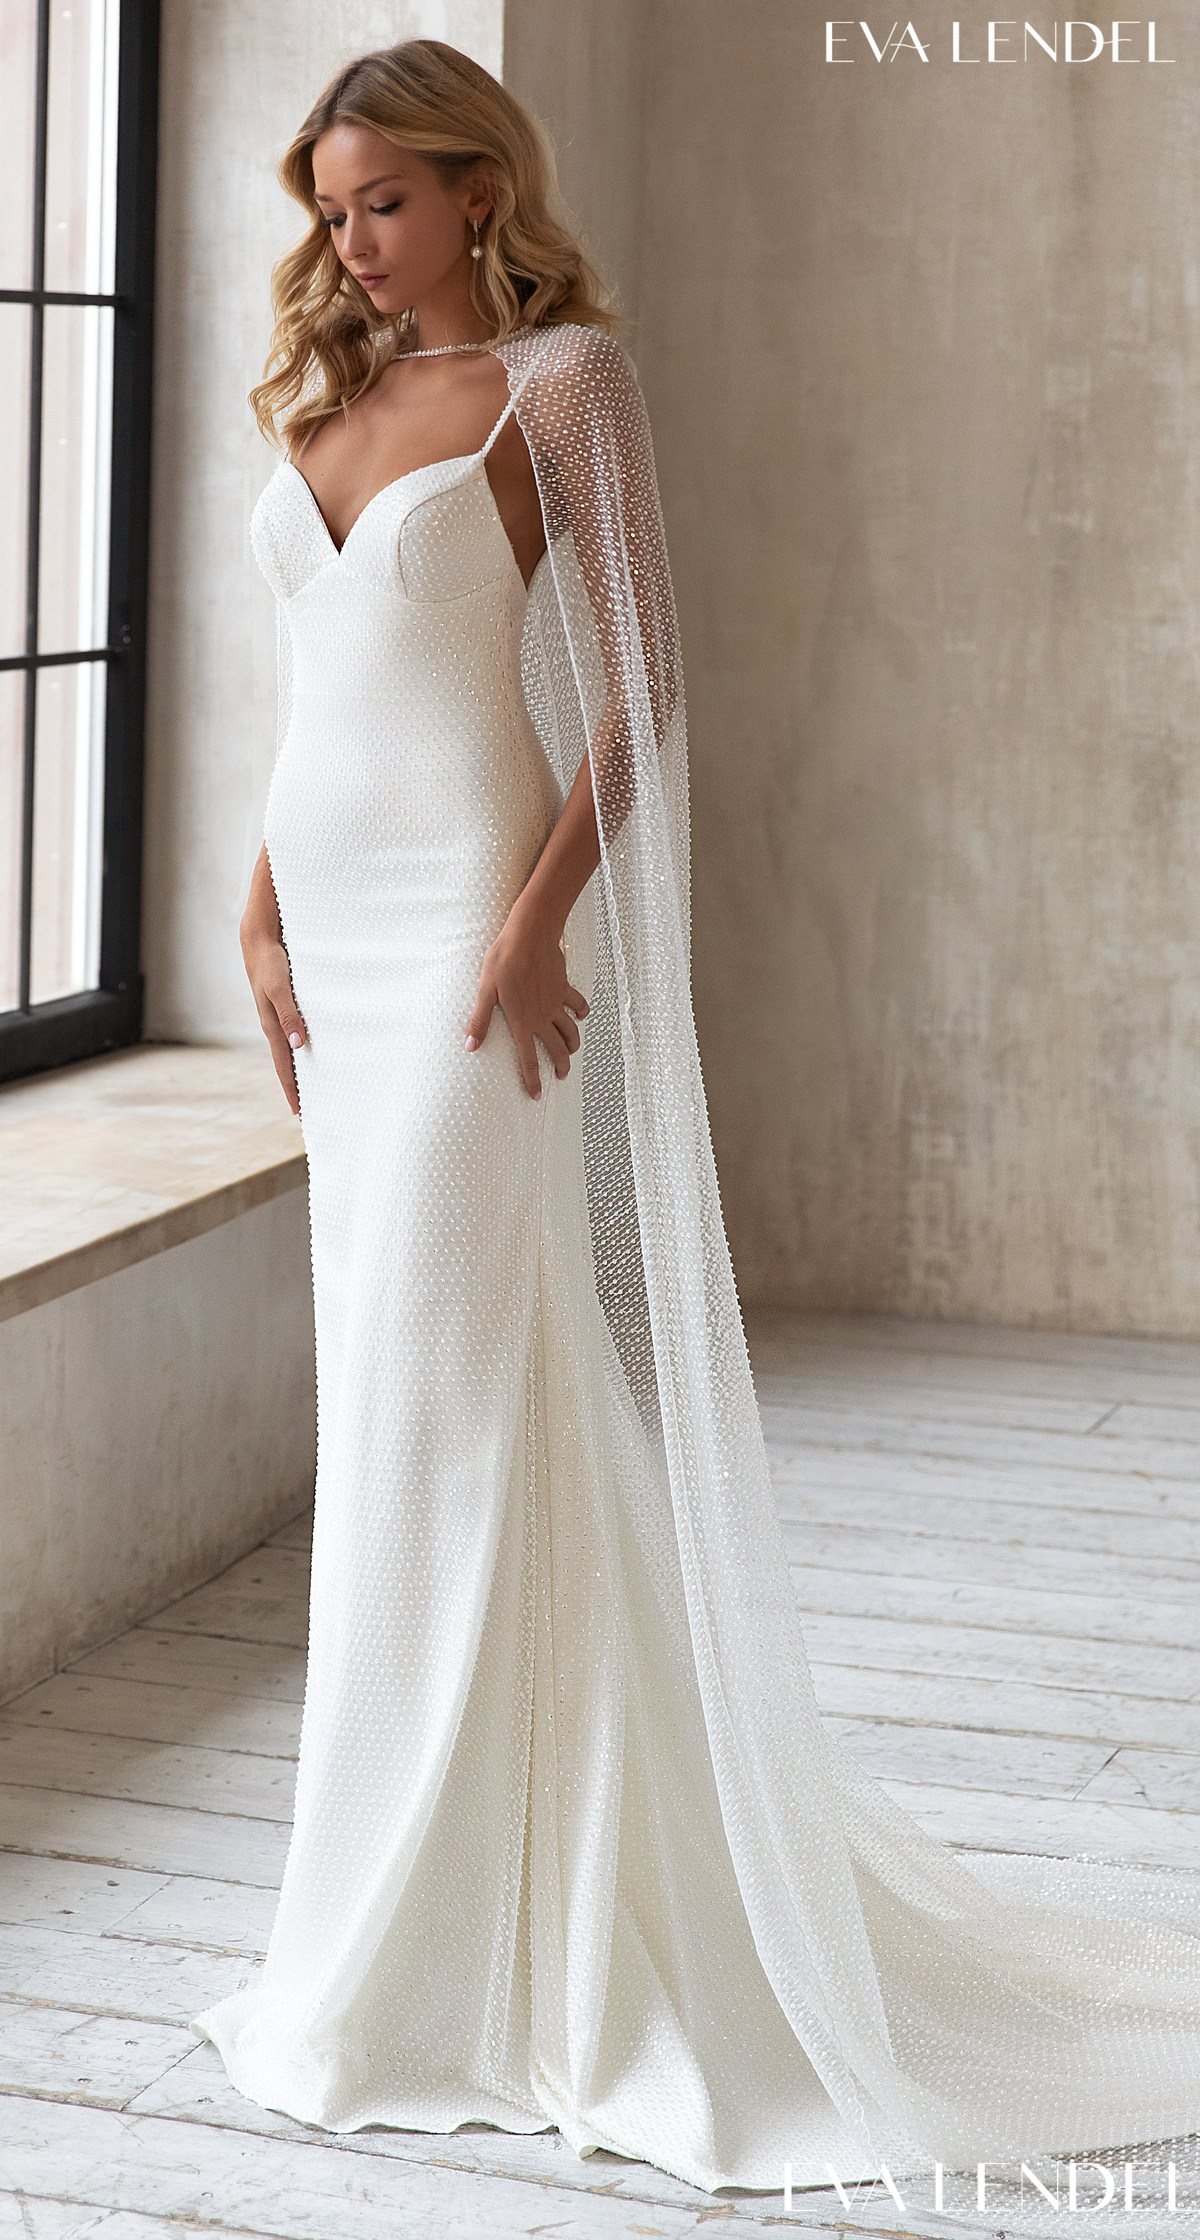 Eva Lendel Wedding Dresses 2021- Less is More Collection -Daniel